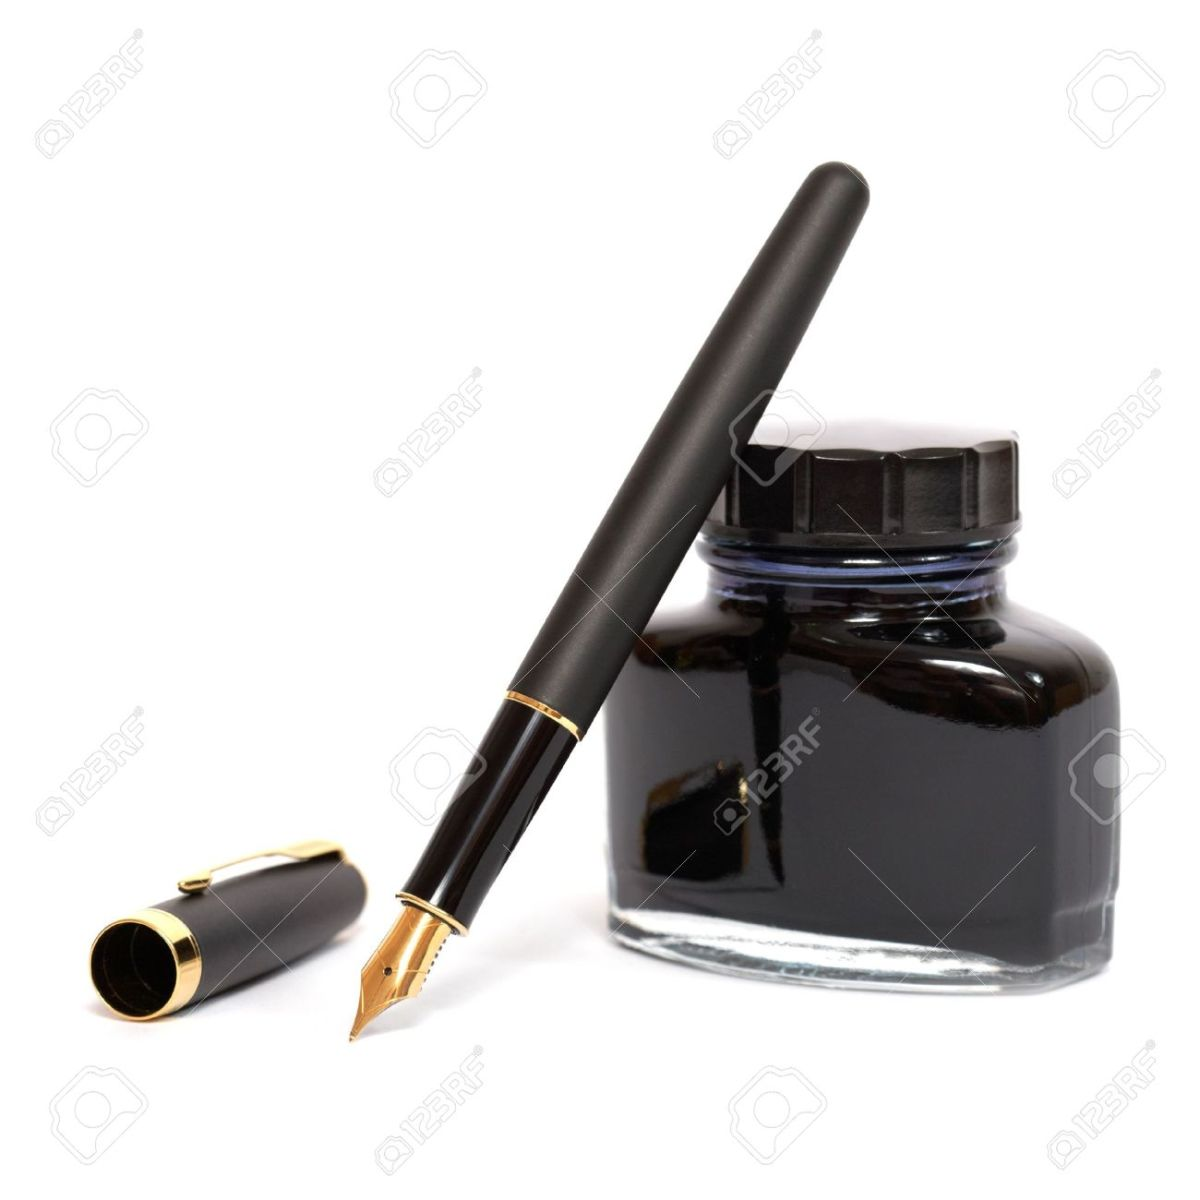 Fountain Pen With Ink Bottle Stock Photo, Picture And Royalty Free Image.  Image 8931763.